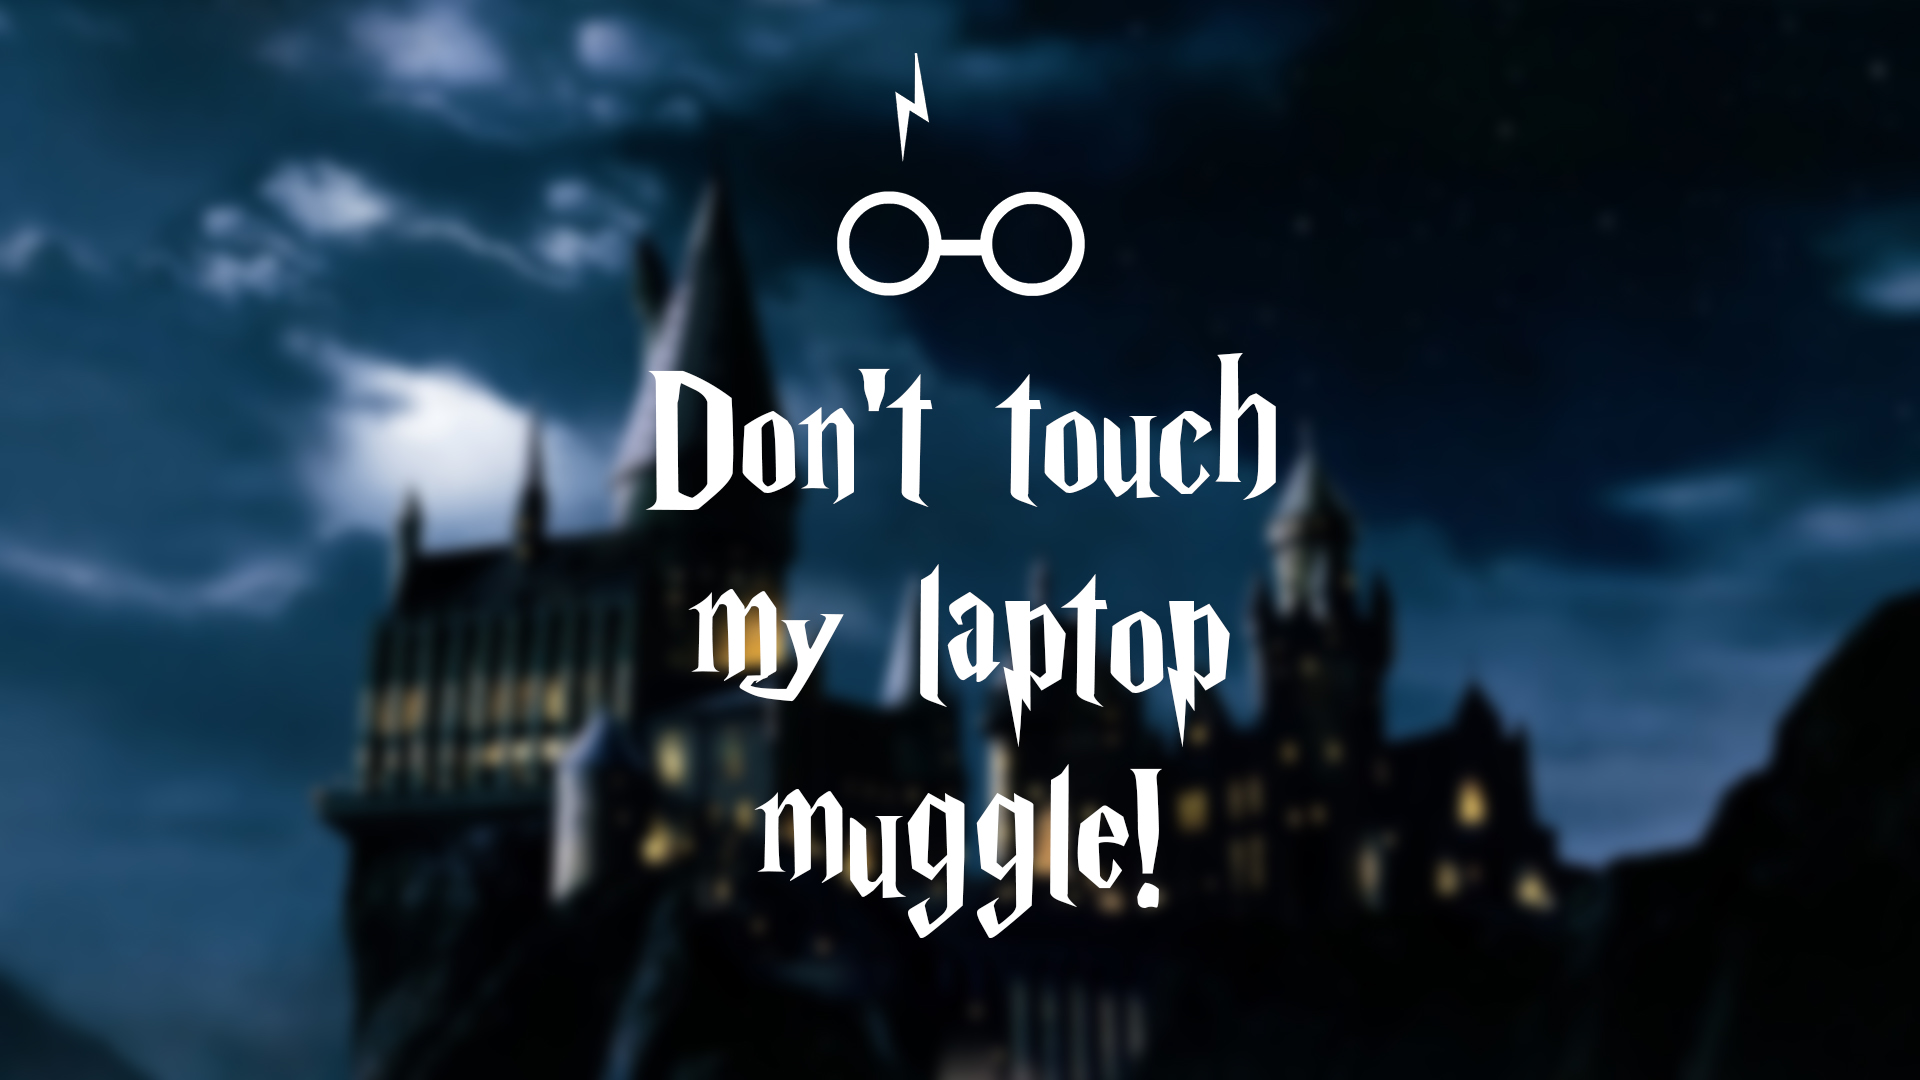 Must see Wallpaper Harry Potter Girly - harry_potter___laptop_wallpaper_muggle_by_nikital-d97d6v7  Trends_5925100.jpg